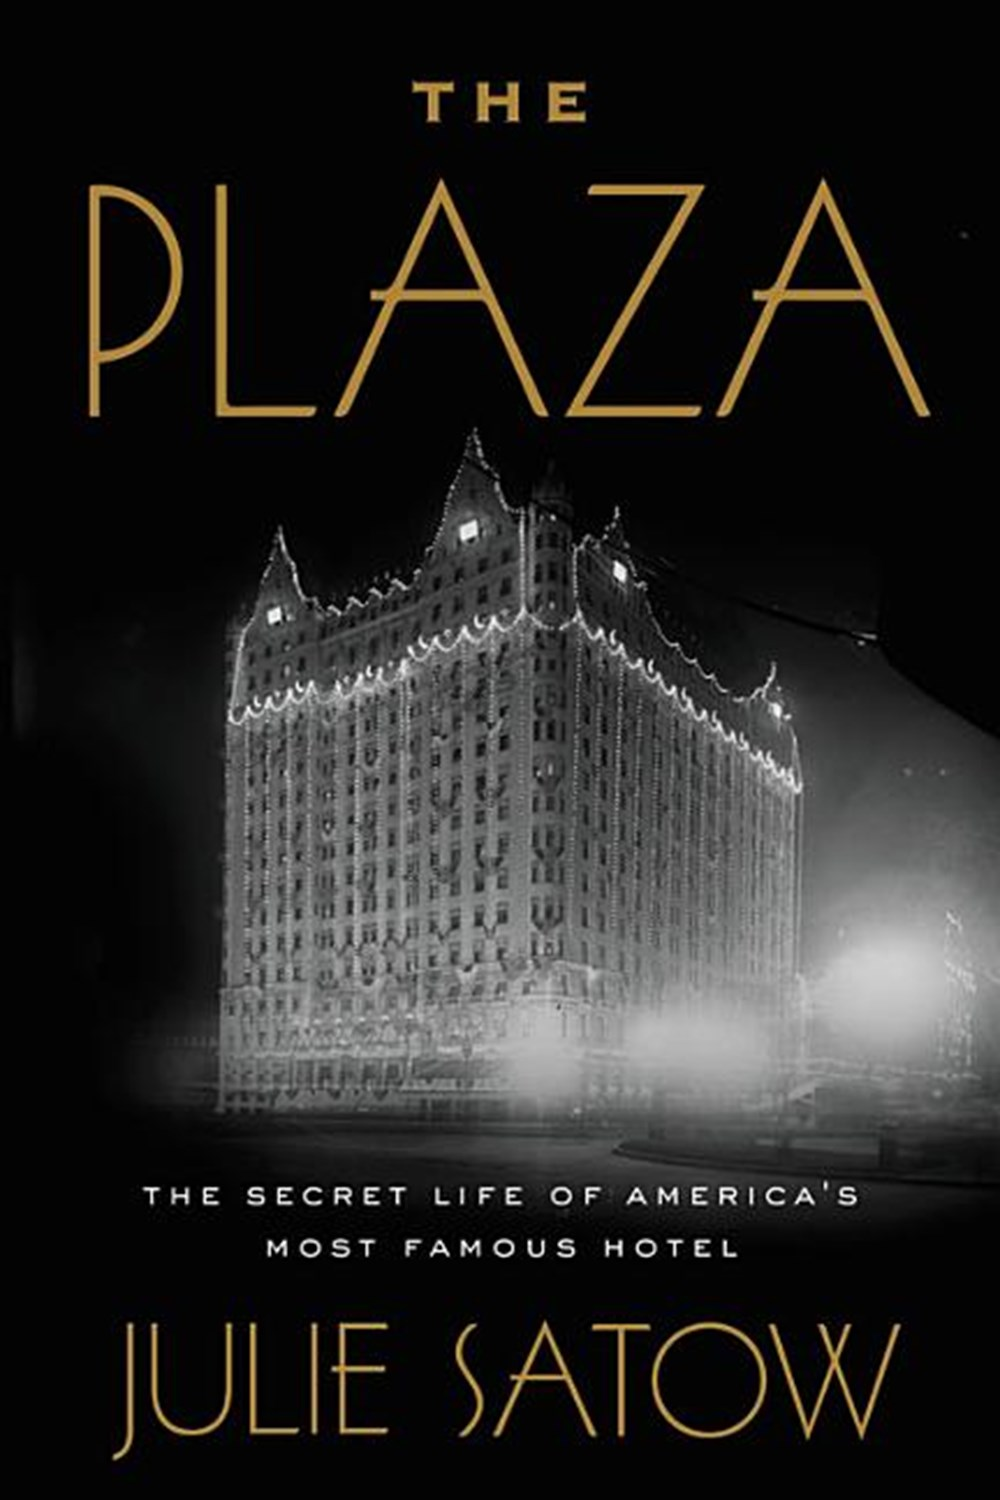 Plaza The Secret Life of America's Most Famous Hotel